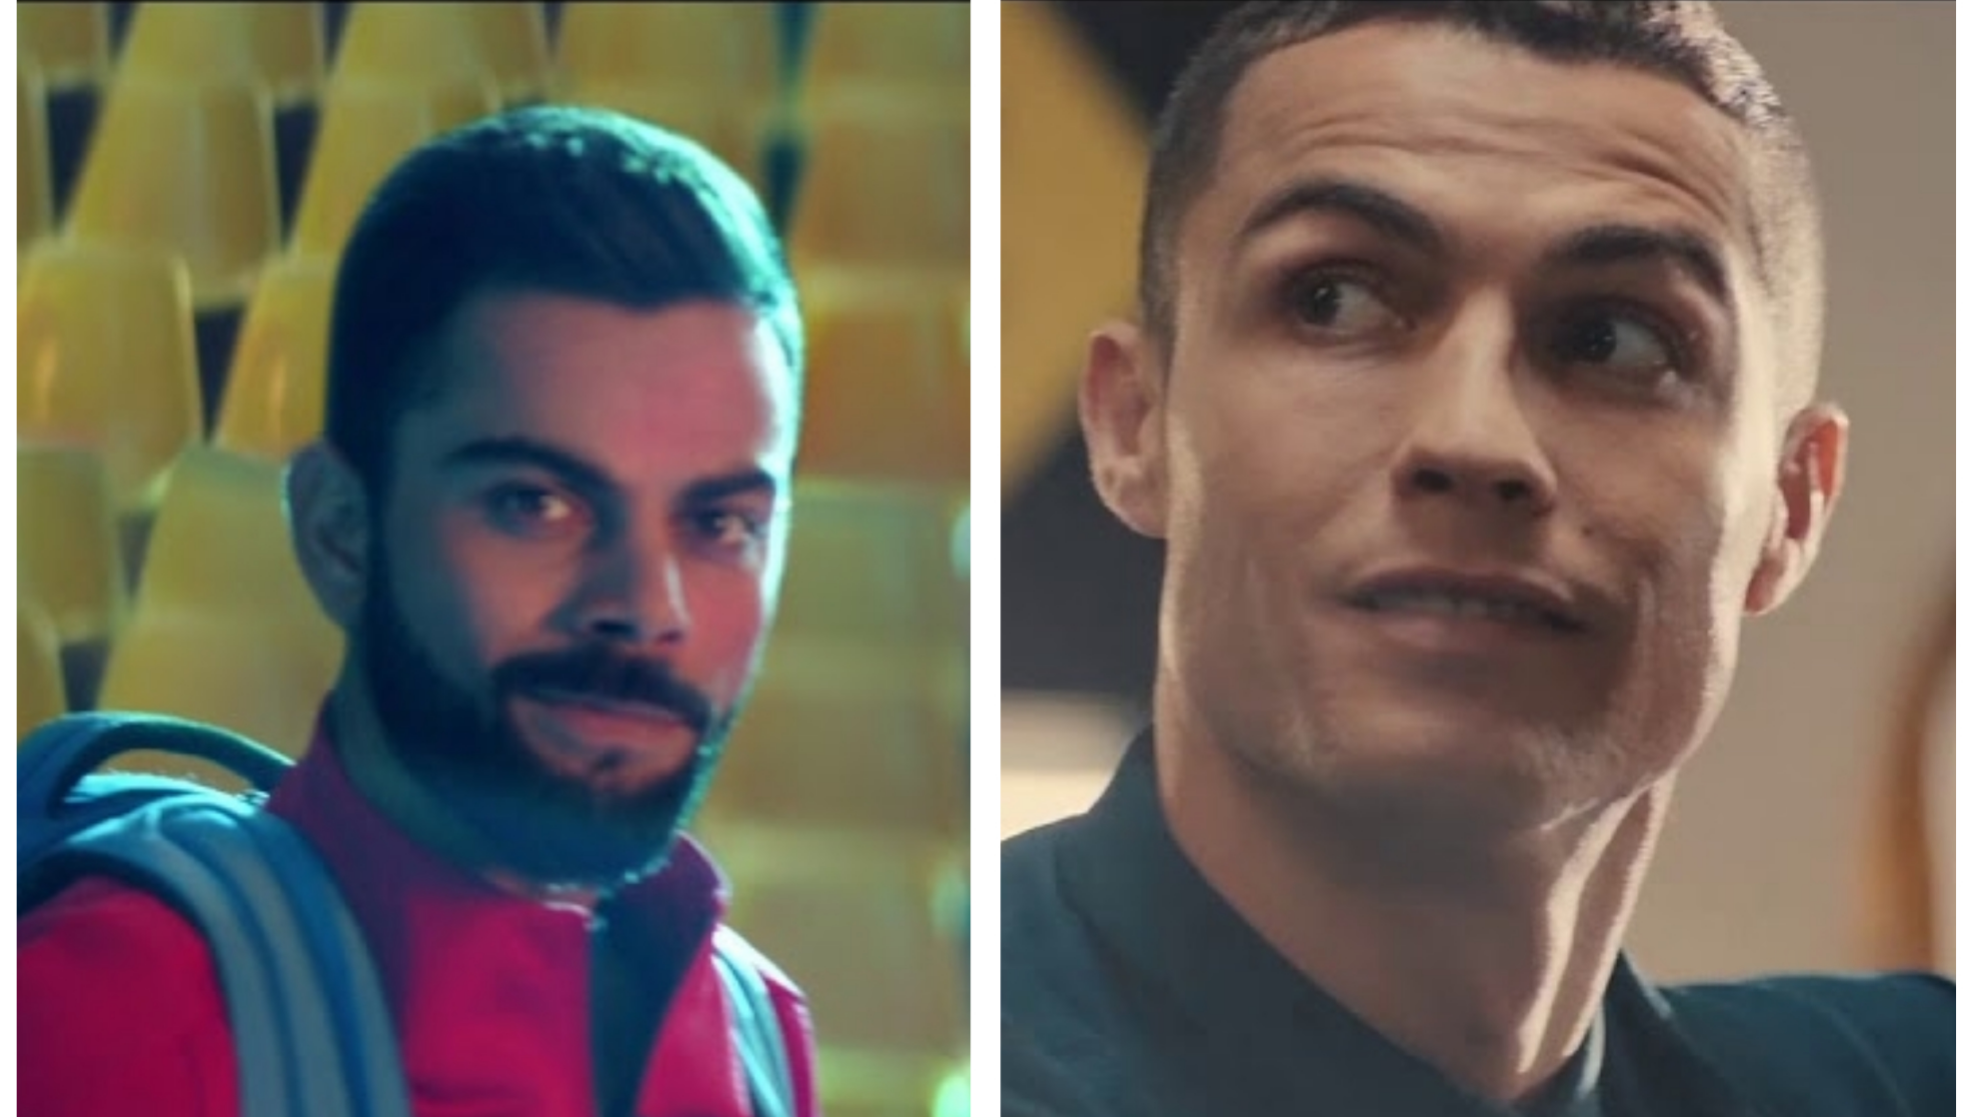 WATCH: Virat Kohli and Cristiano Ronaldo appear in a commercial together